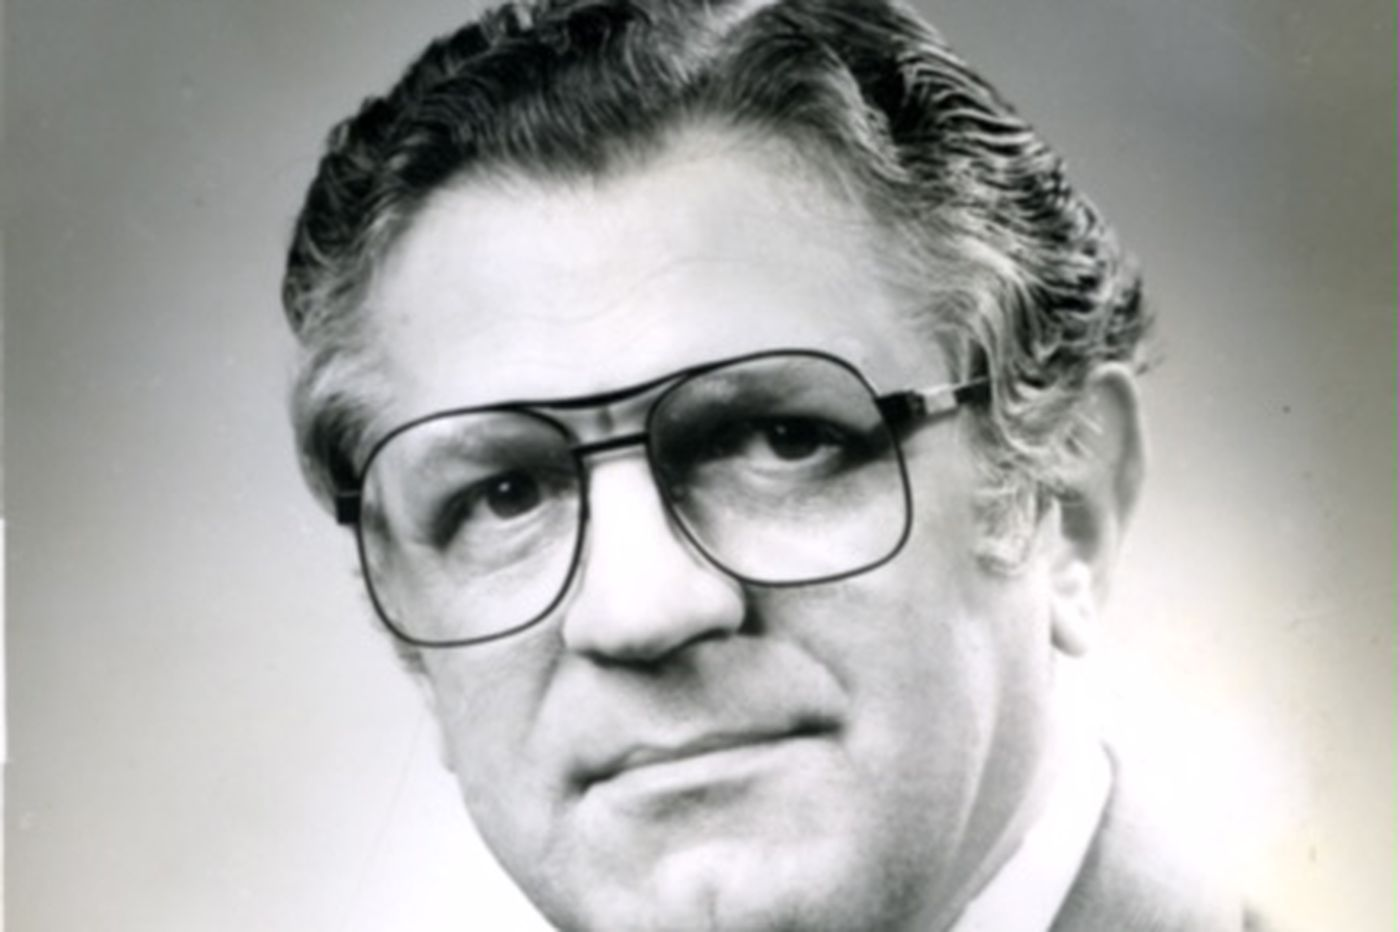 Ihor Alexander Shust, 87, former CoreStates senior vice president and Ukrainian community leader